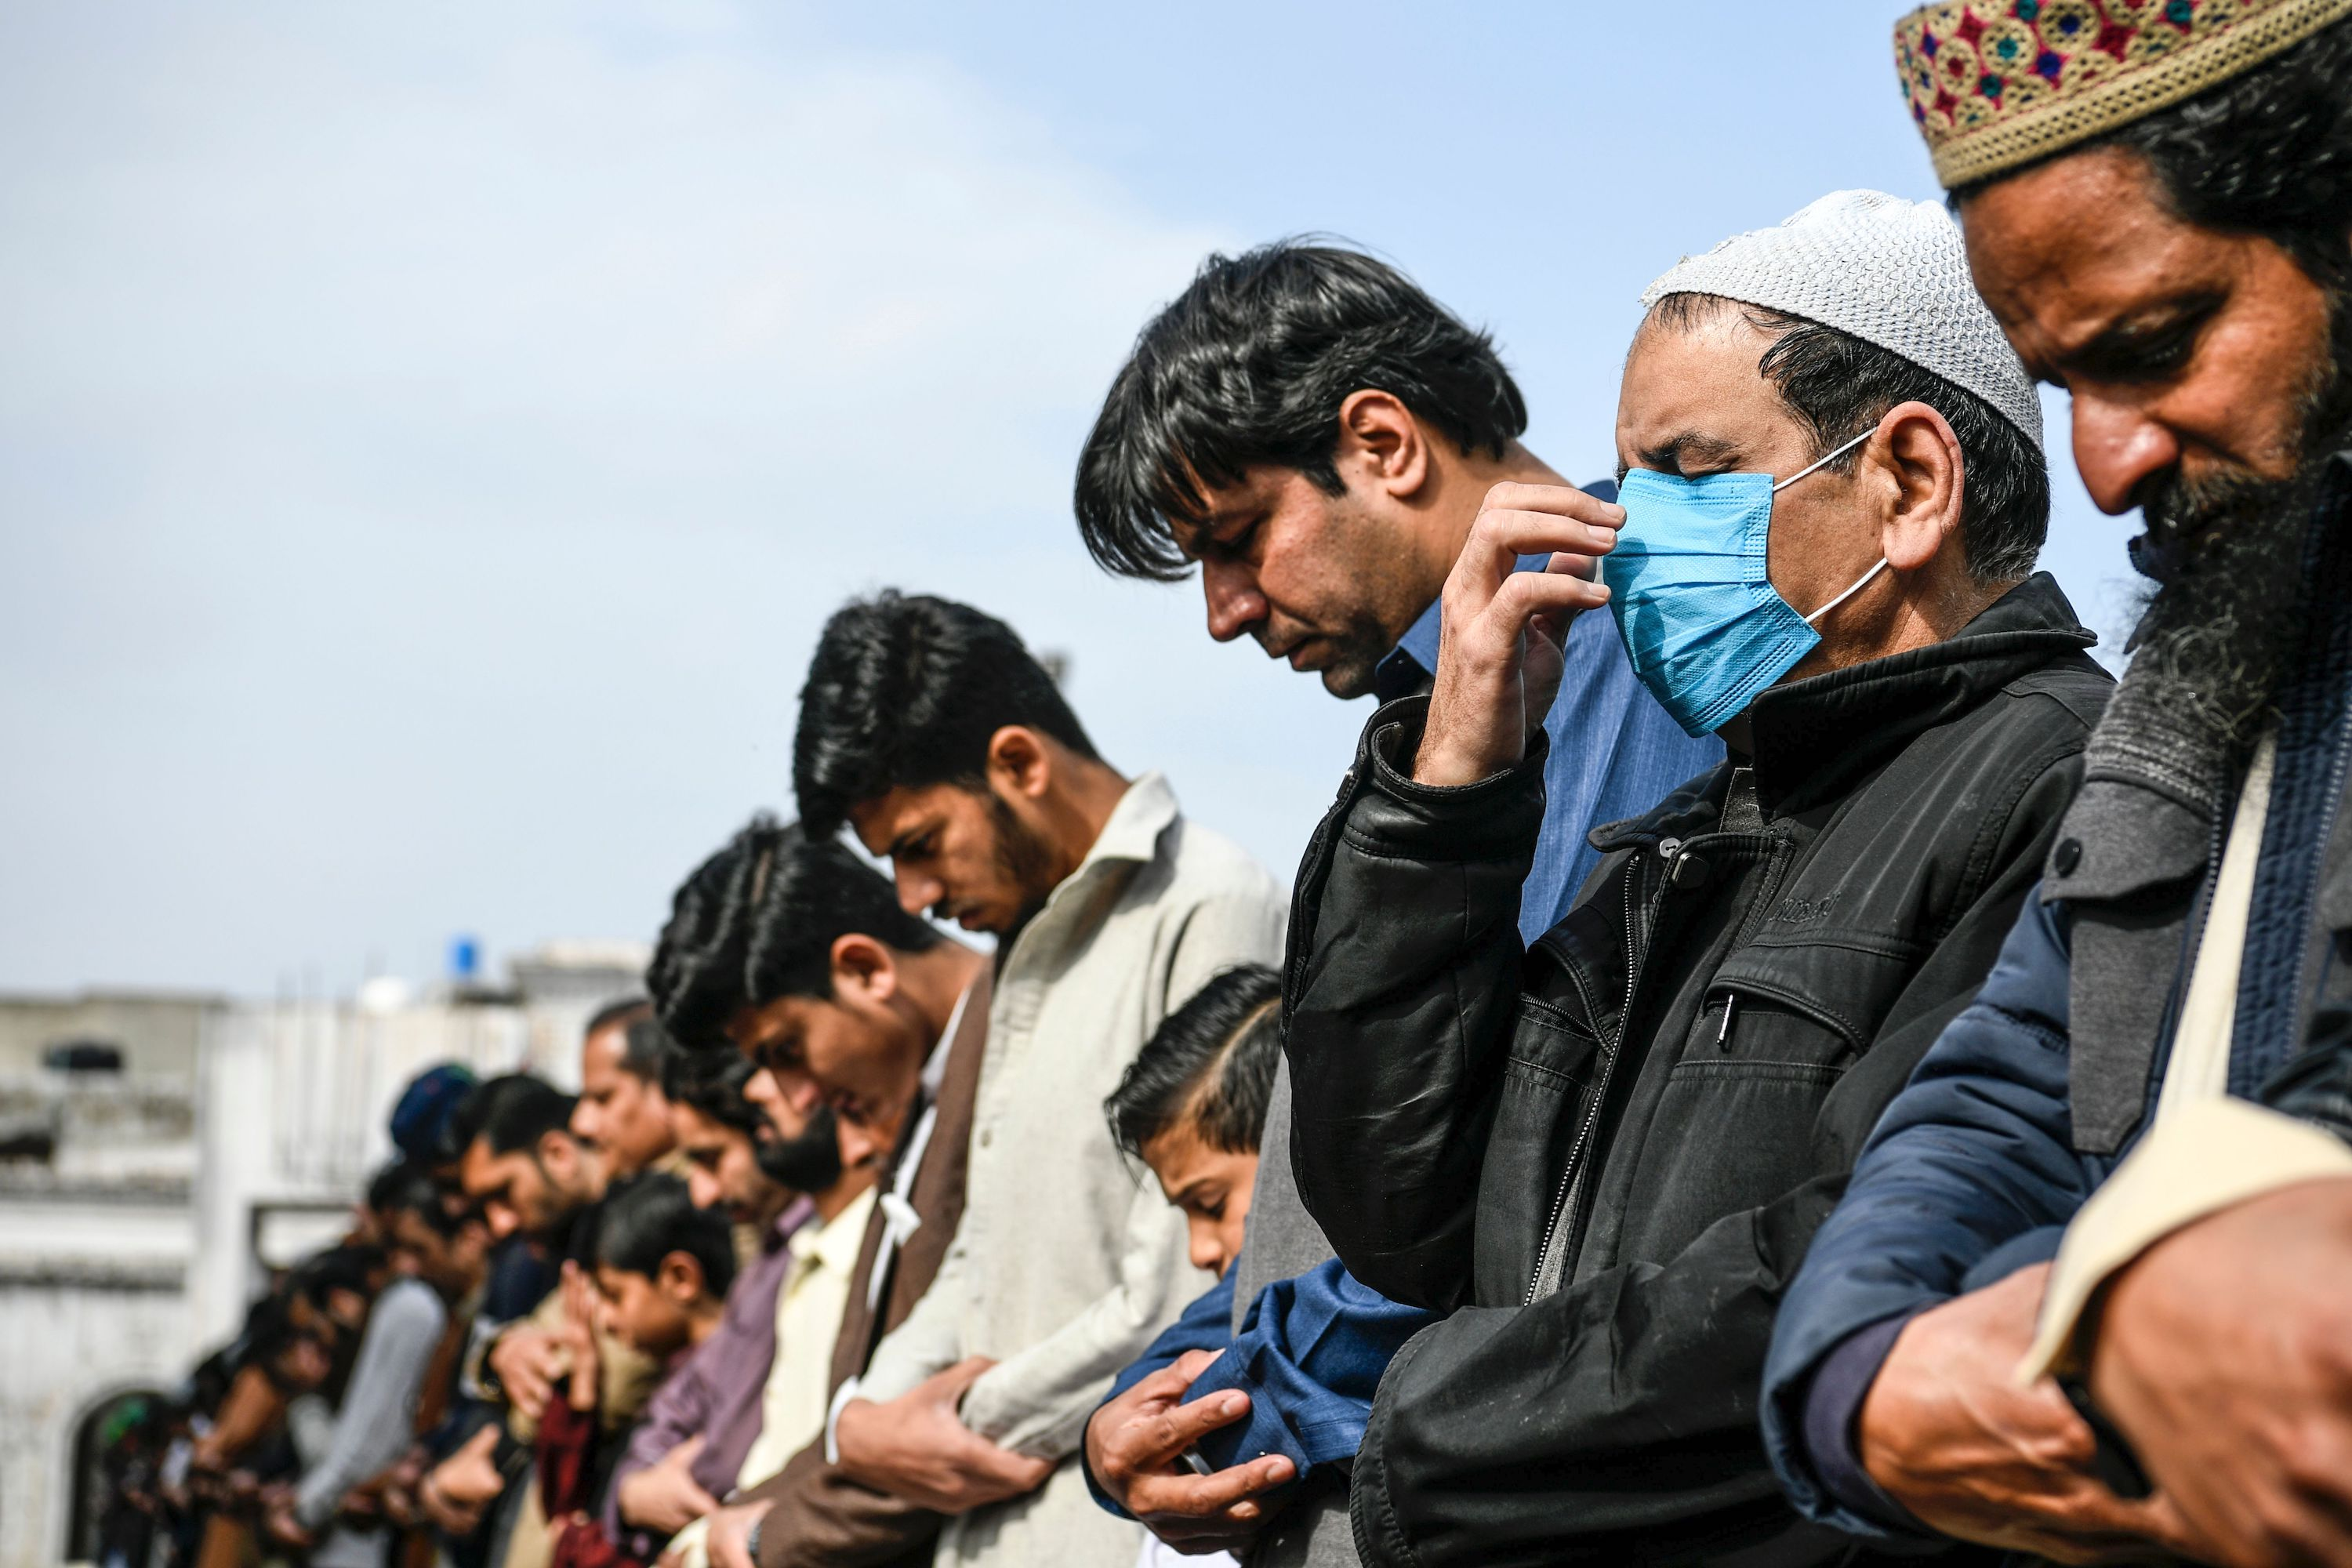 A resident (R) wearing a facemask as a preventive measure against the spread of the COVID-19 coronavirus offers Friday prayers along with other Muslims at a mosque in Rawalpindi on March 13, 2020.